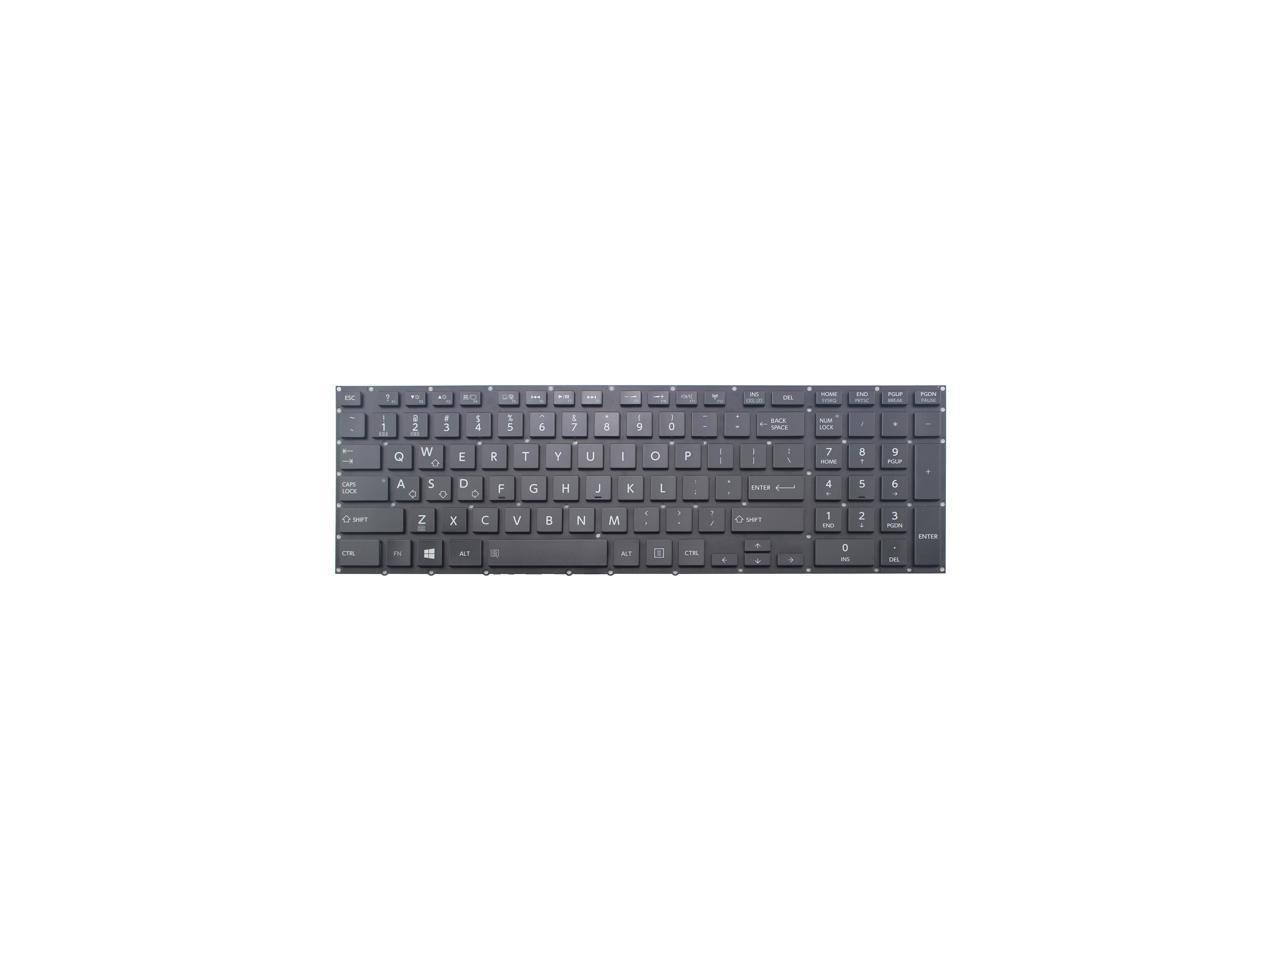 US layout black color CHNASAWE Laptop Replacement backlit keyboard without frame for Toshiba Qosmio X70-A X75-A x75-a7295 x75-a7180 x75-a7170 x75-a7298 A000240170